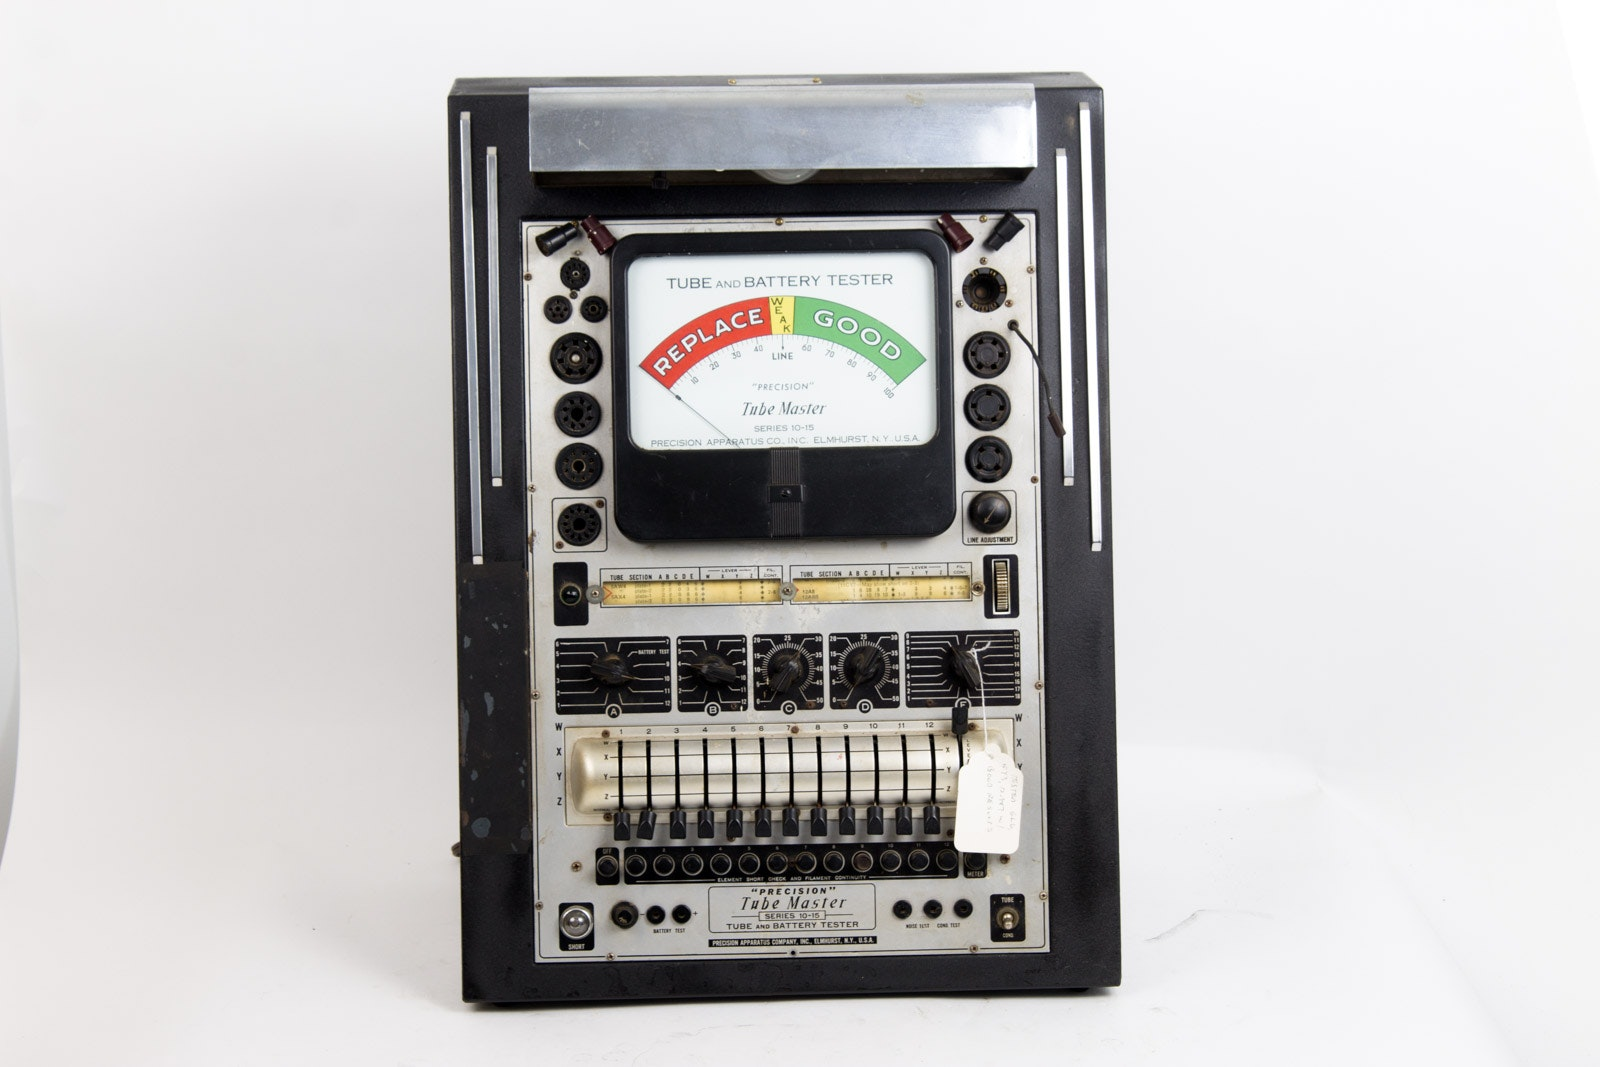 Vintage Precision 10-15 Tube and Battery Tester